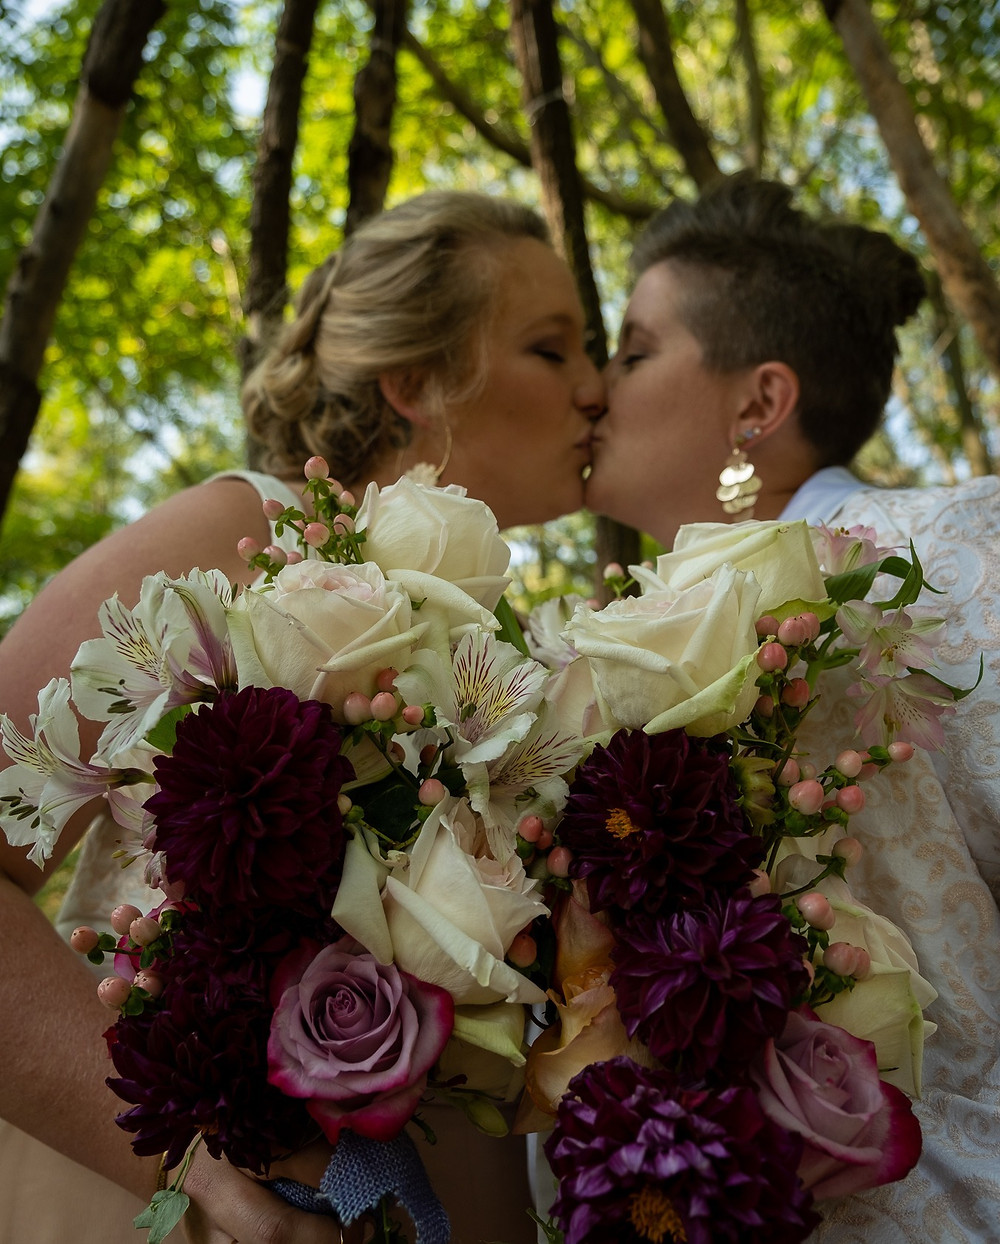 Two Brides Kiss After Exchanging Vows